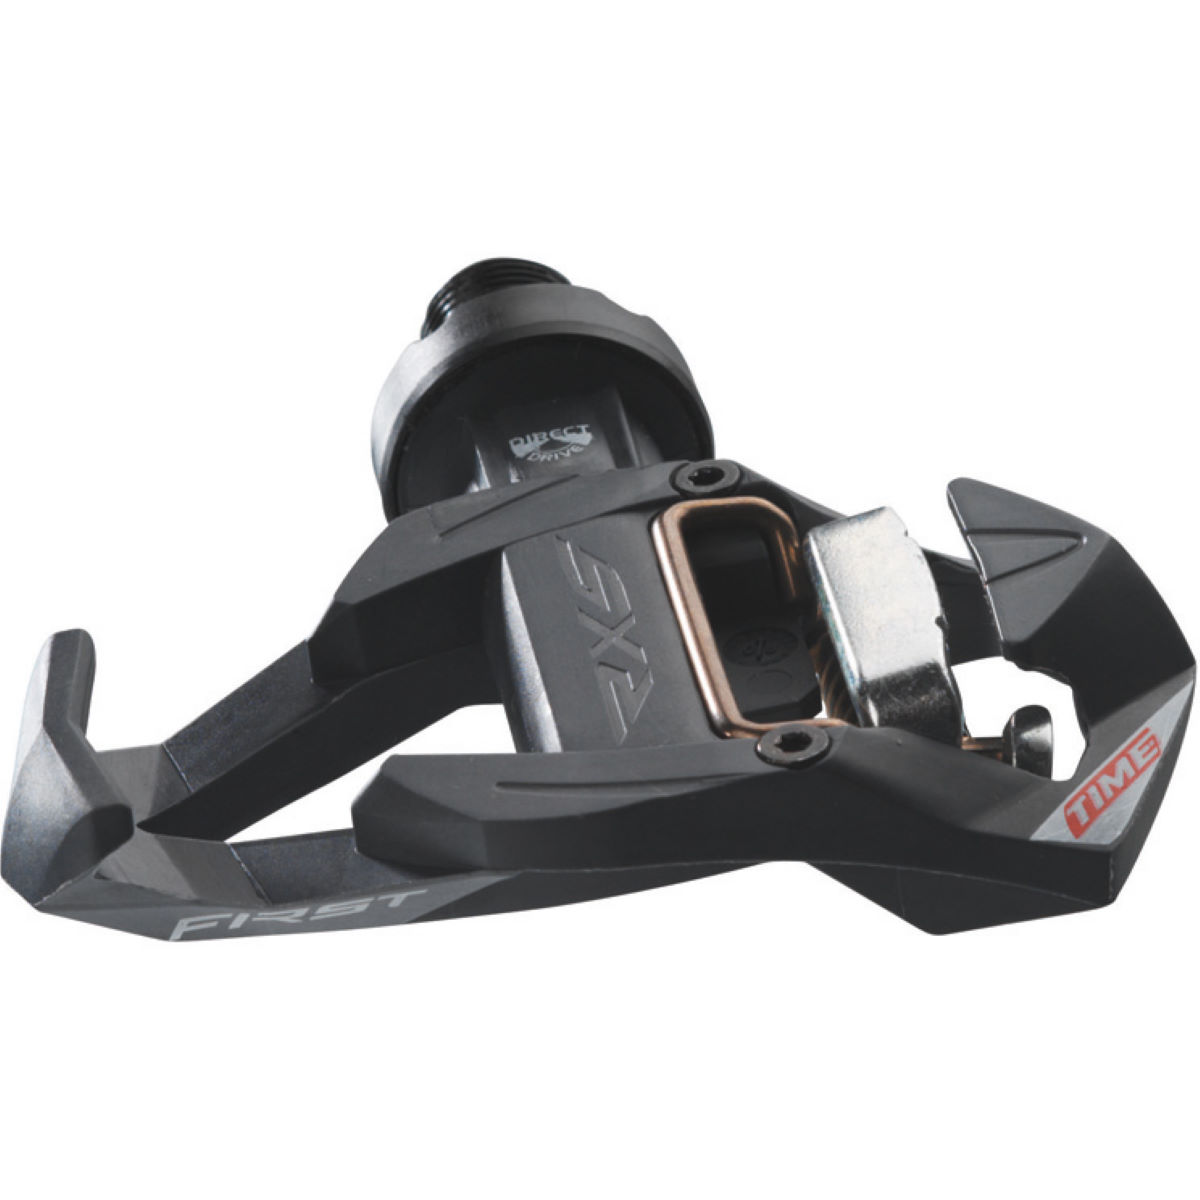 Time RXS First Road Pedals